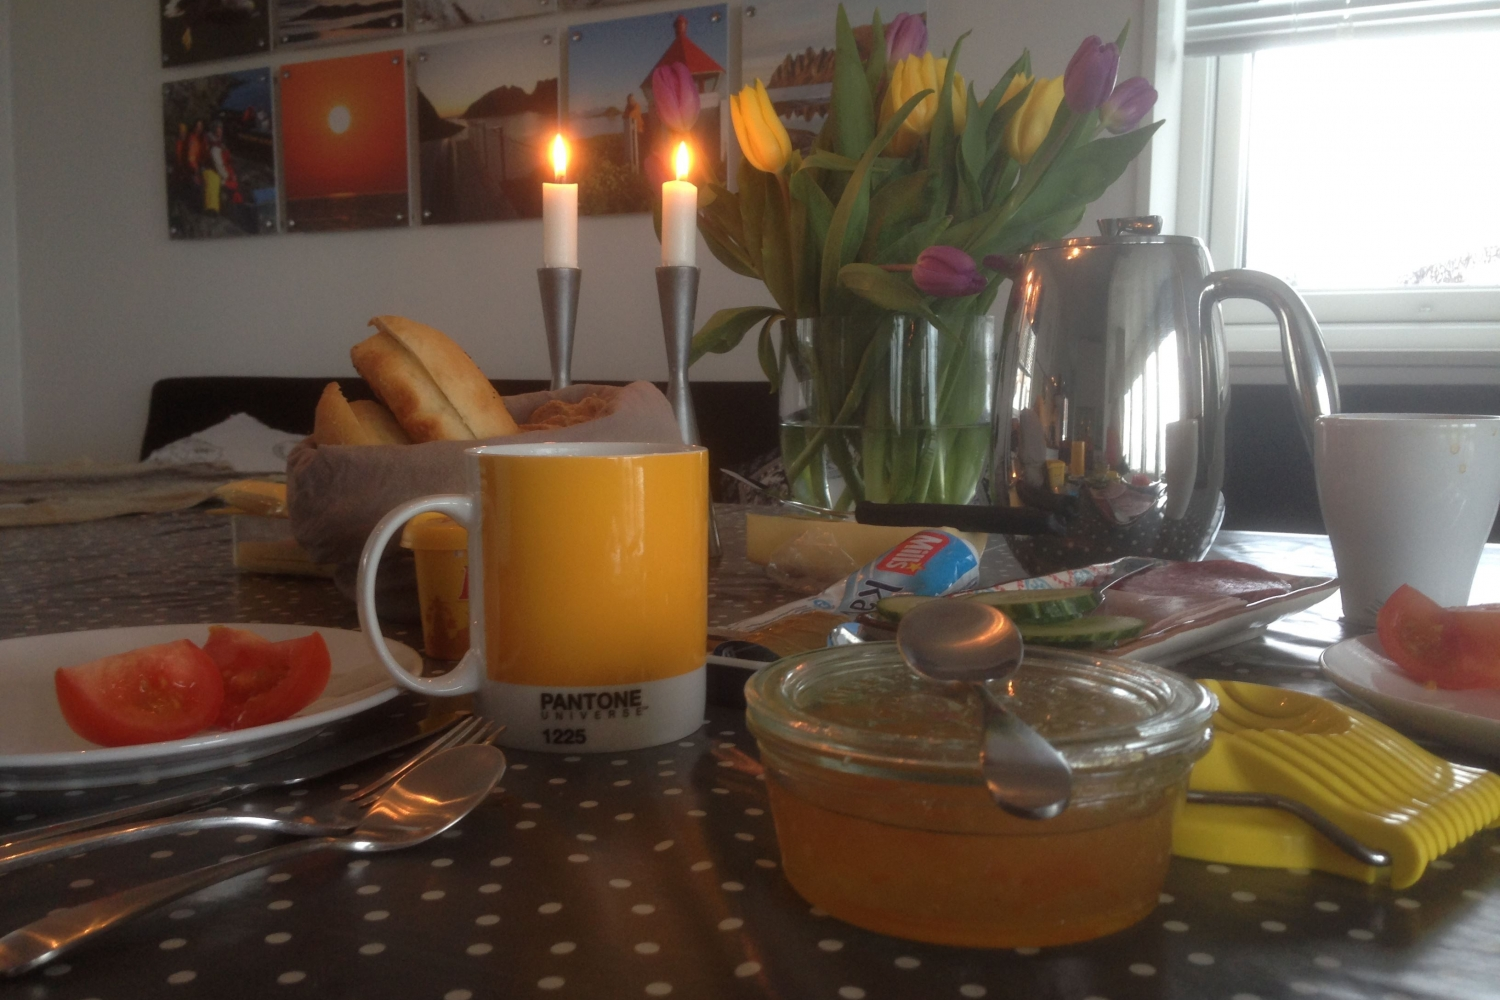 Breakfast and candles